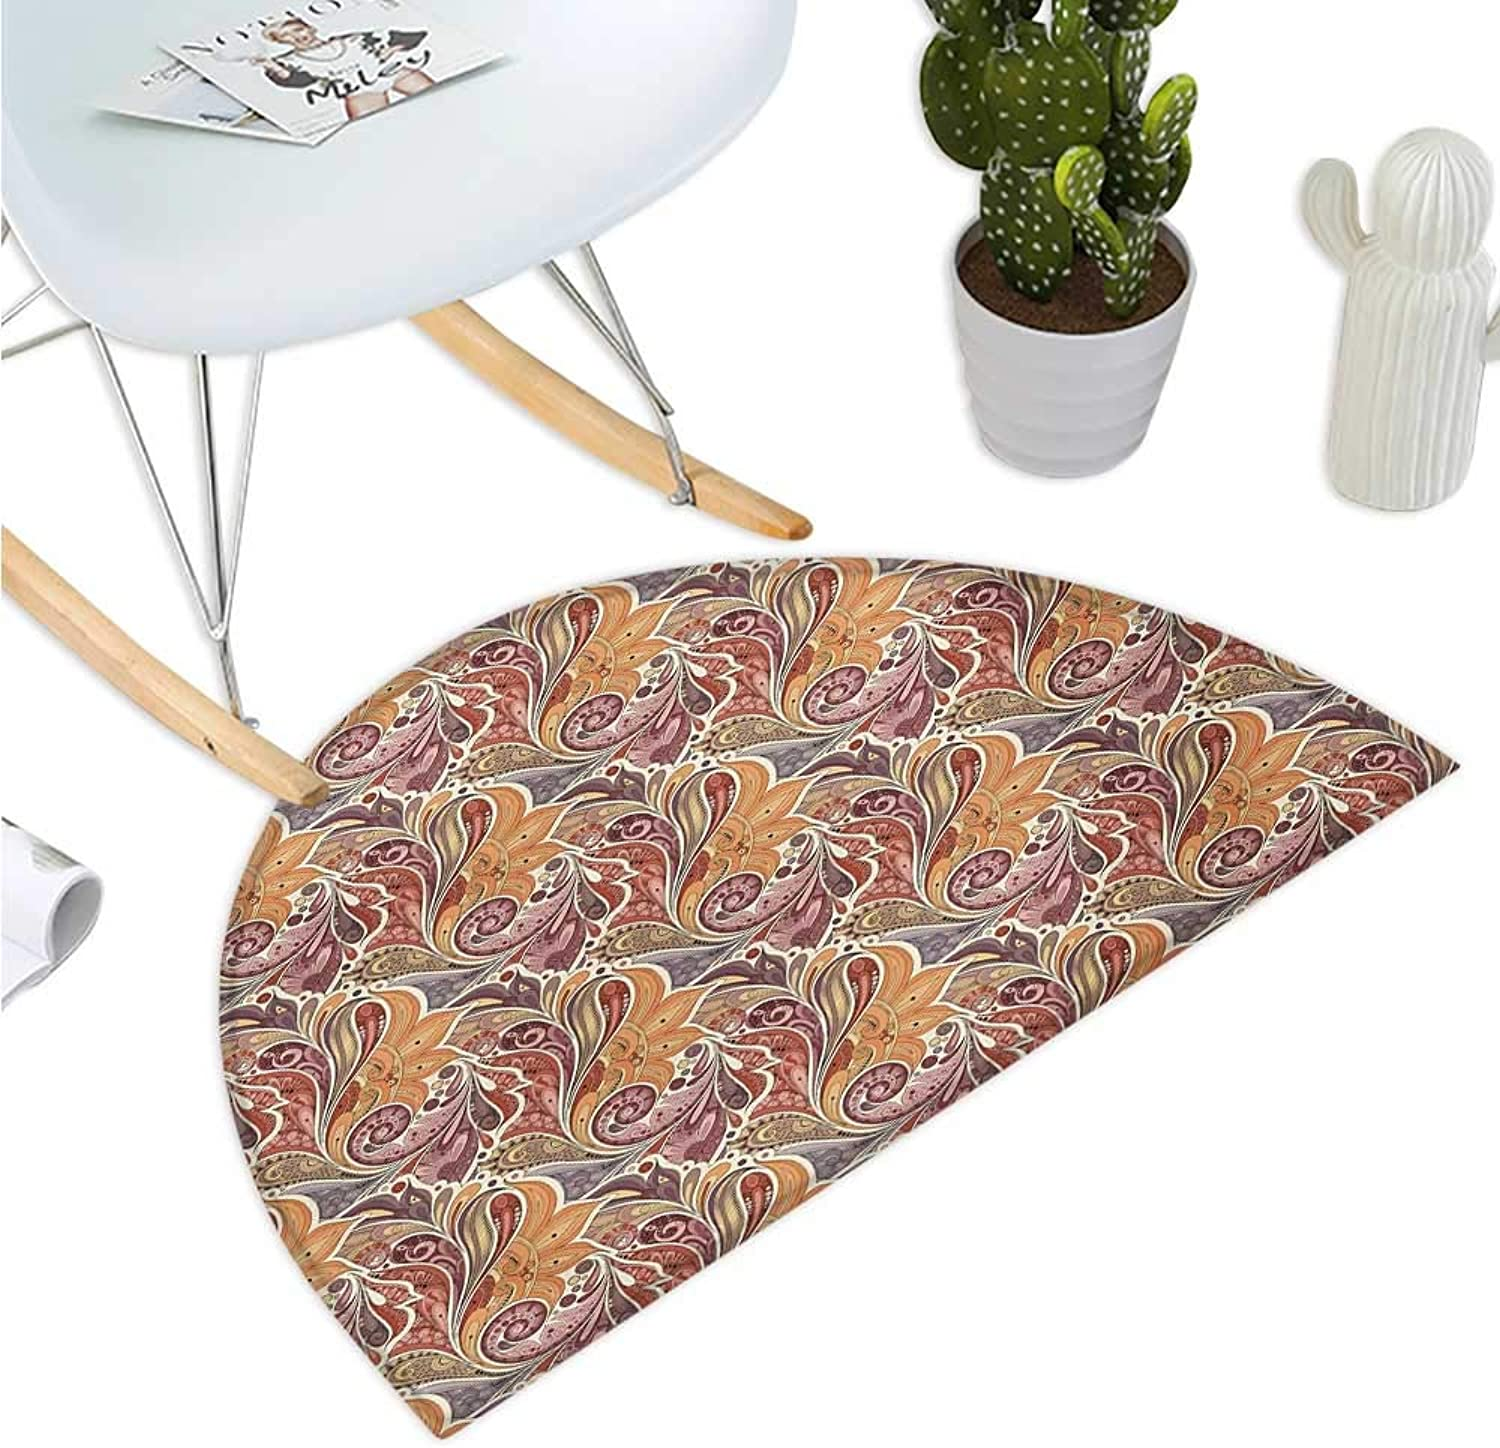 Floral Semicircular Cushion Traditional Paisley Leaf Pattern with Persian Arabesque Details colorful Boho Design Halfmoon doormats H 43.3  xD 64.9  Multicolor